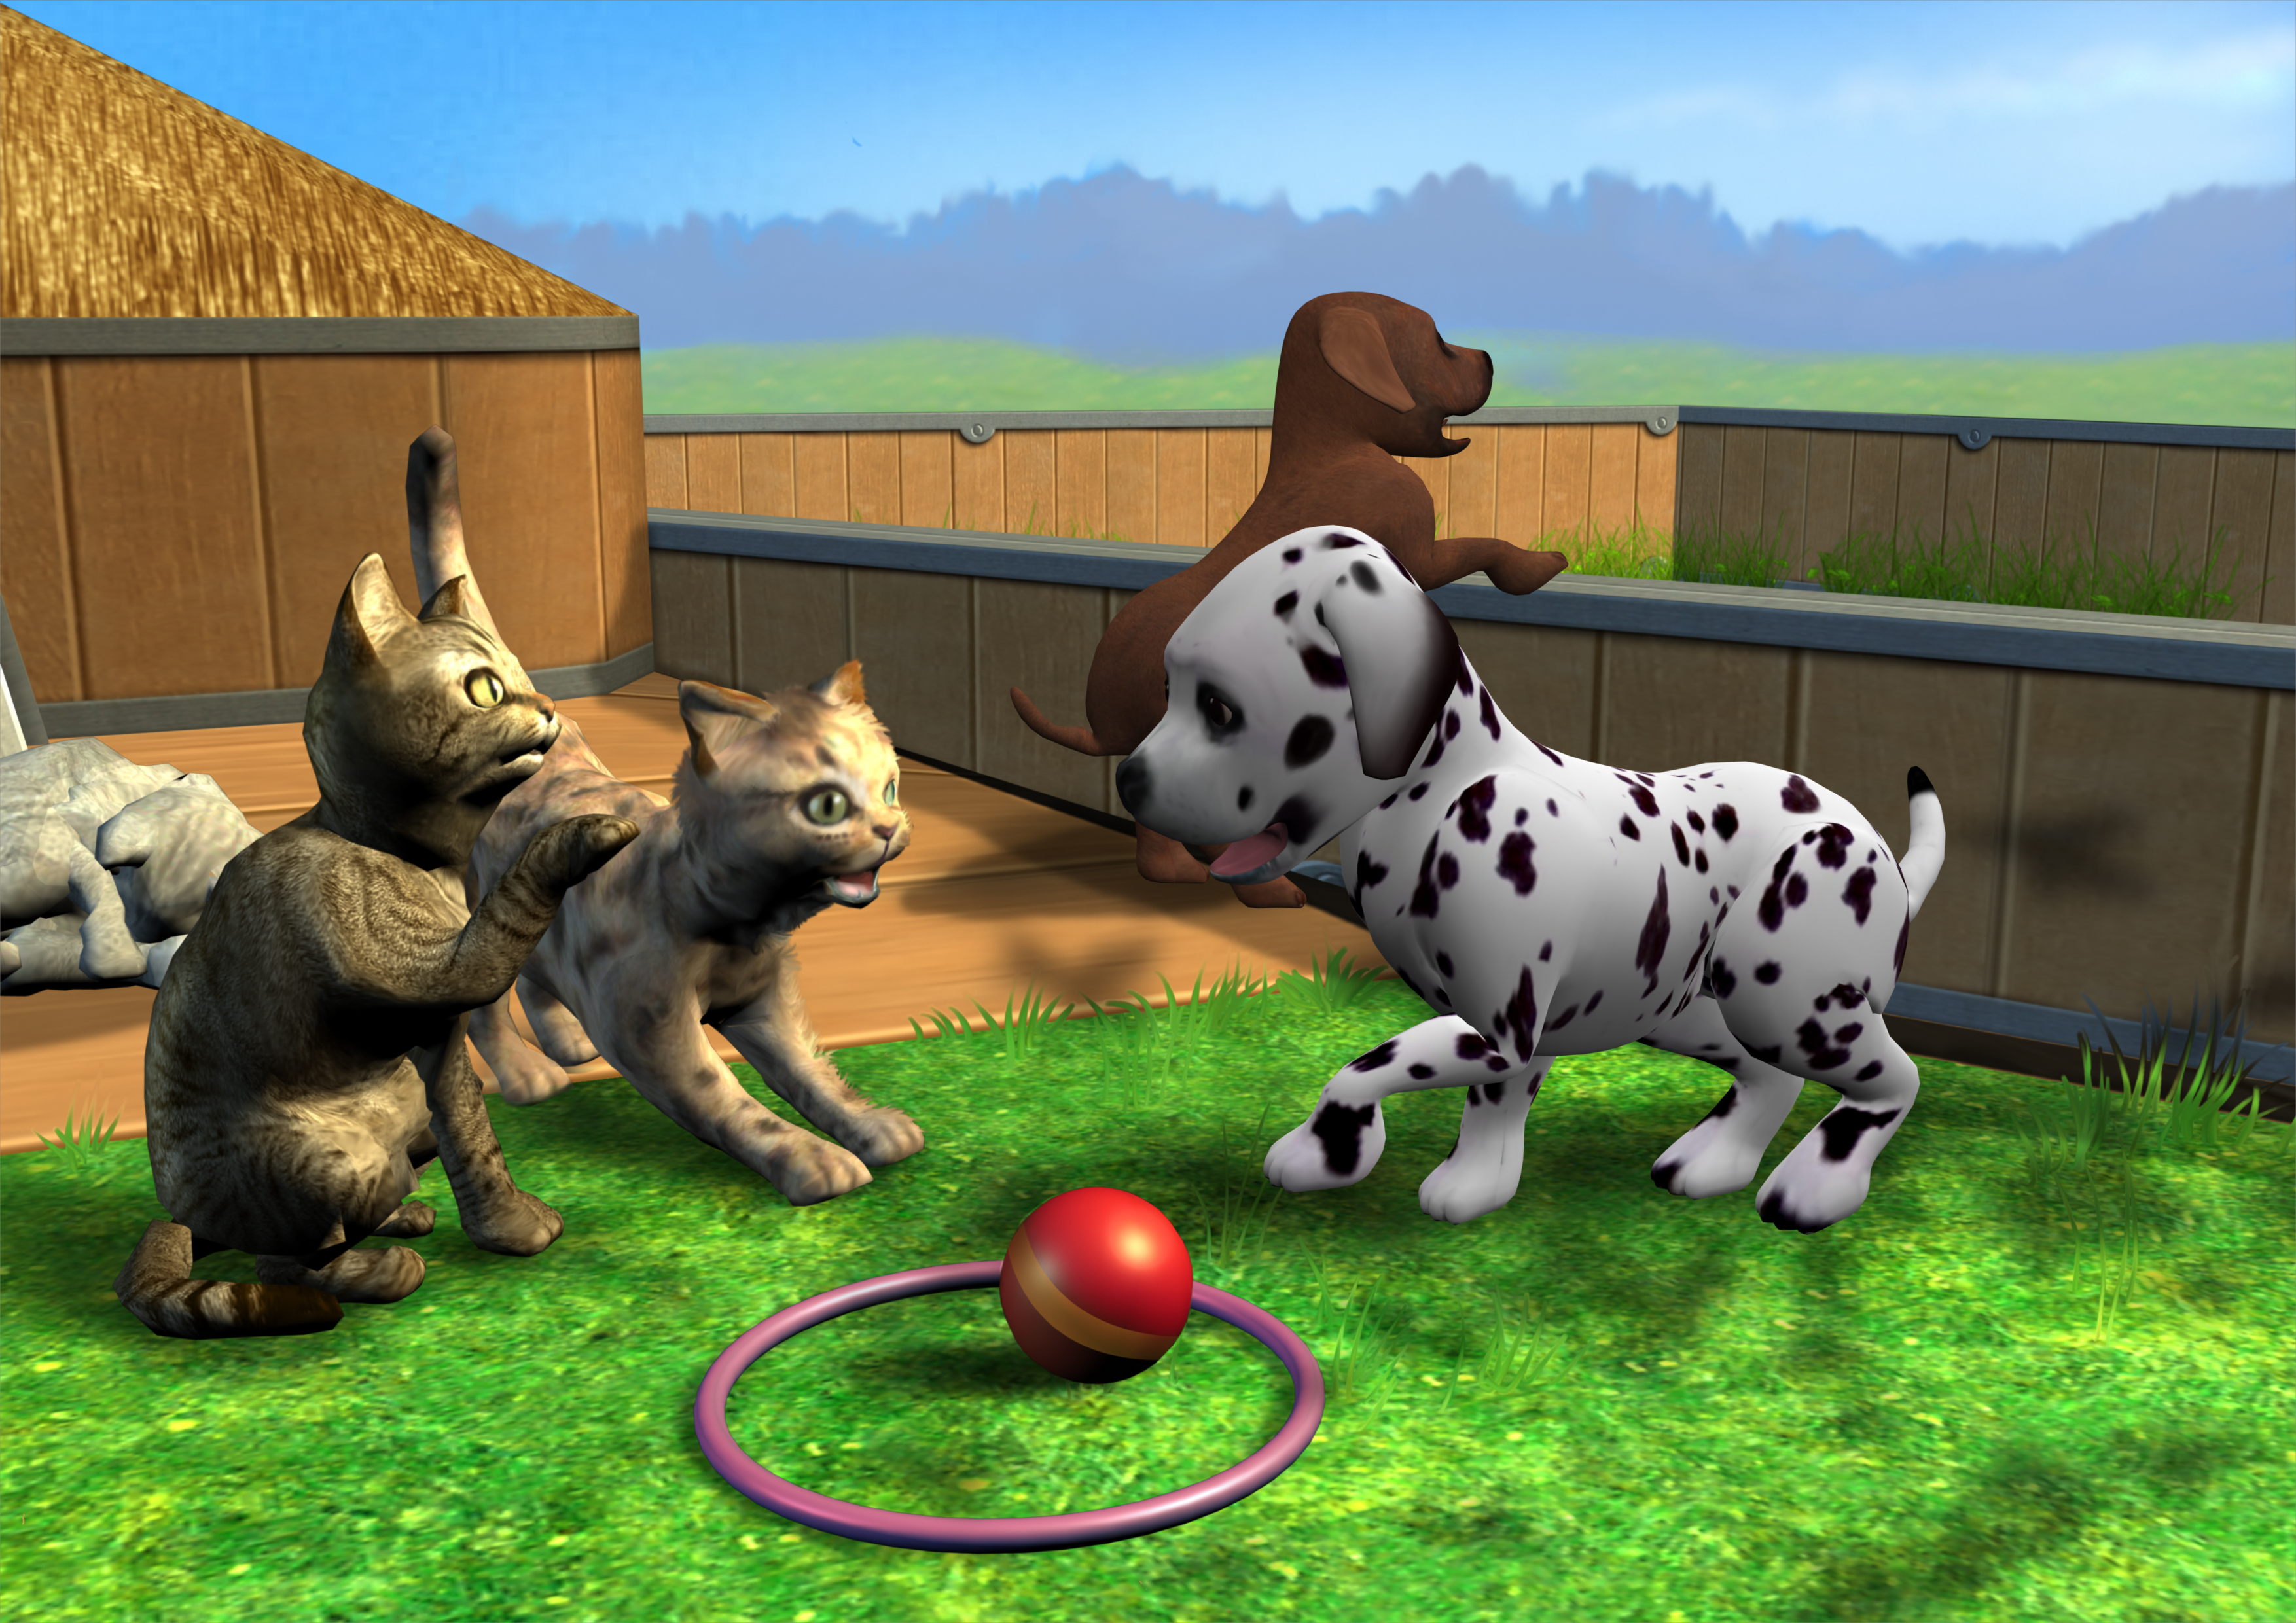 CTR-N_KPTE_PetSchool3D_BackgroundArt_1